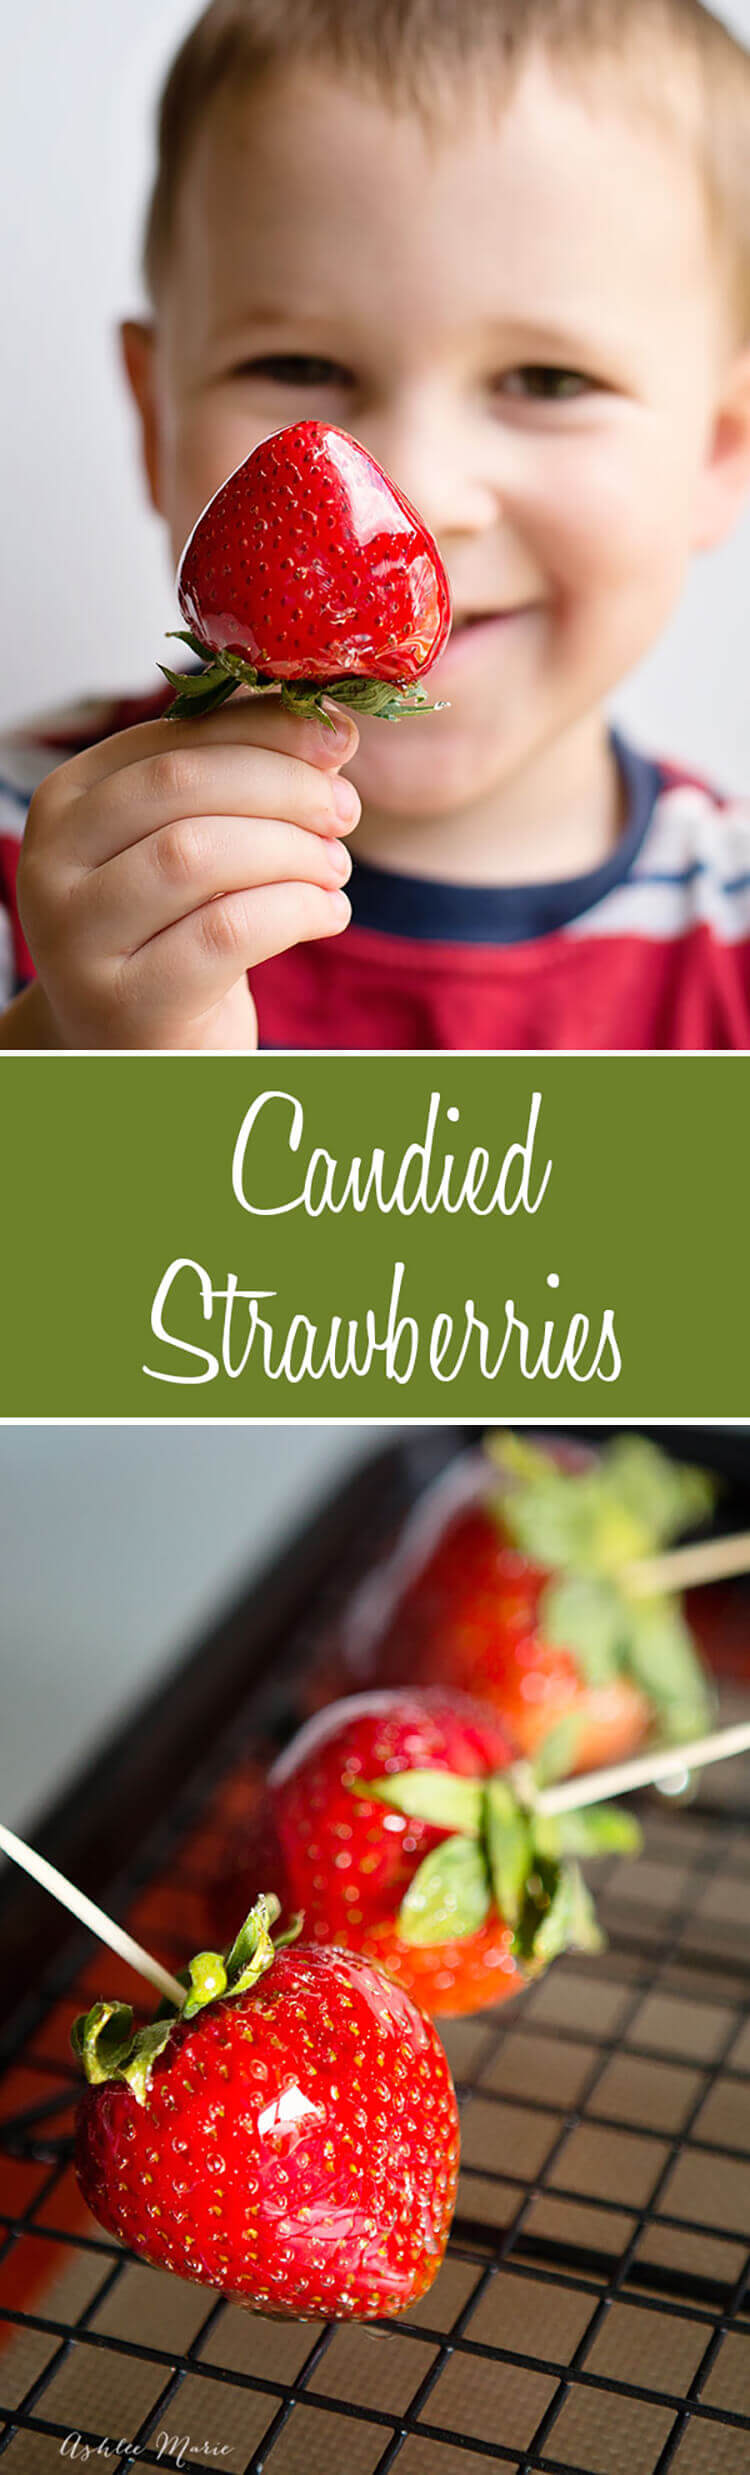 Have you ever heard of such a thing? It's like a candied apple, but with strawberries!